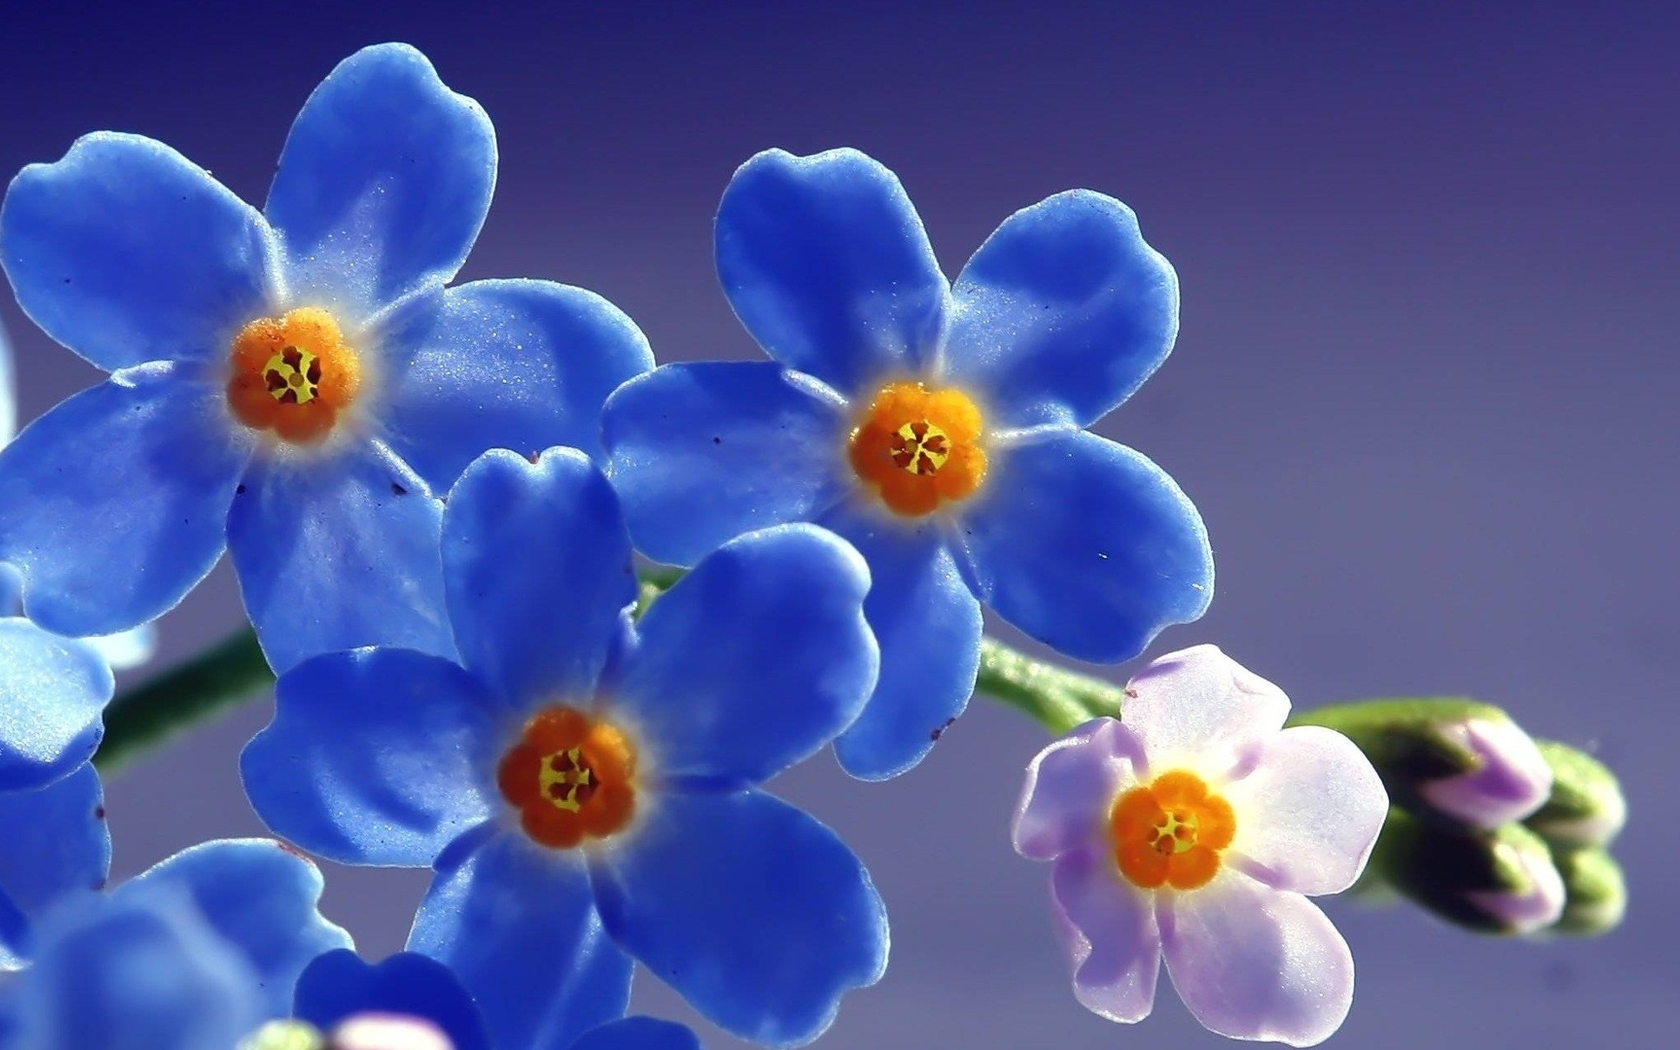 1680x1050 Blue Beautiful Flowers 1680x1050 Resolution Hd 4k